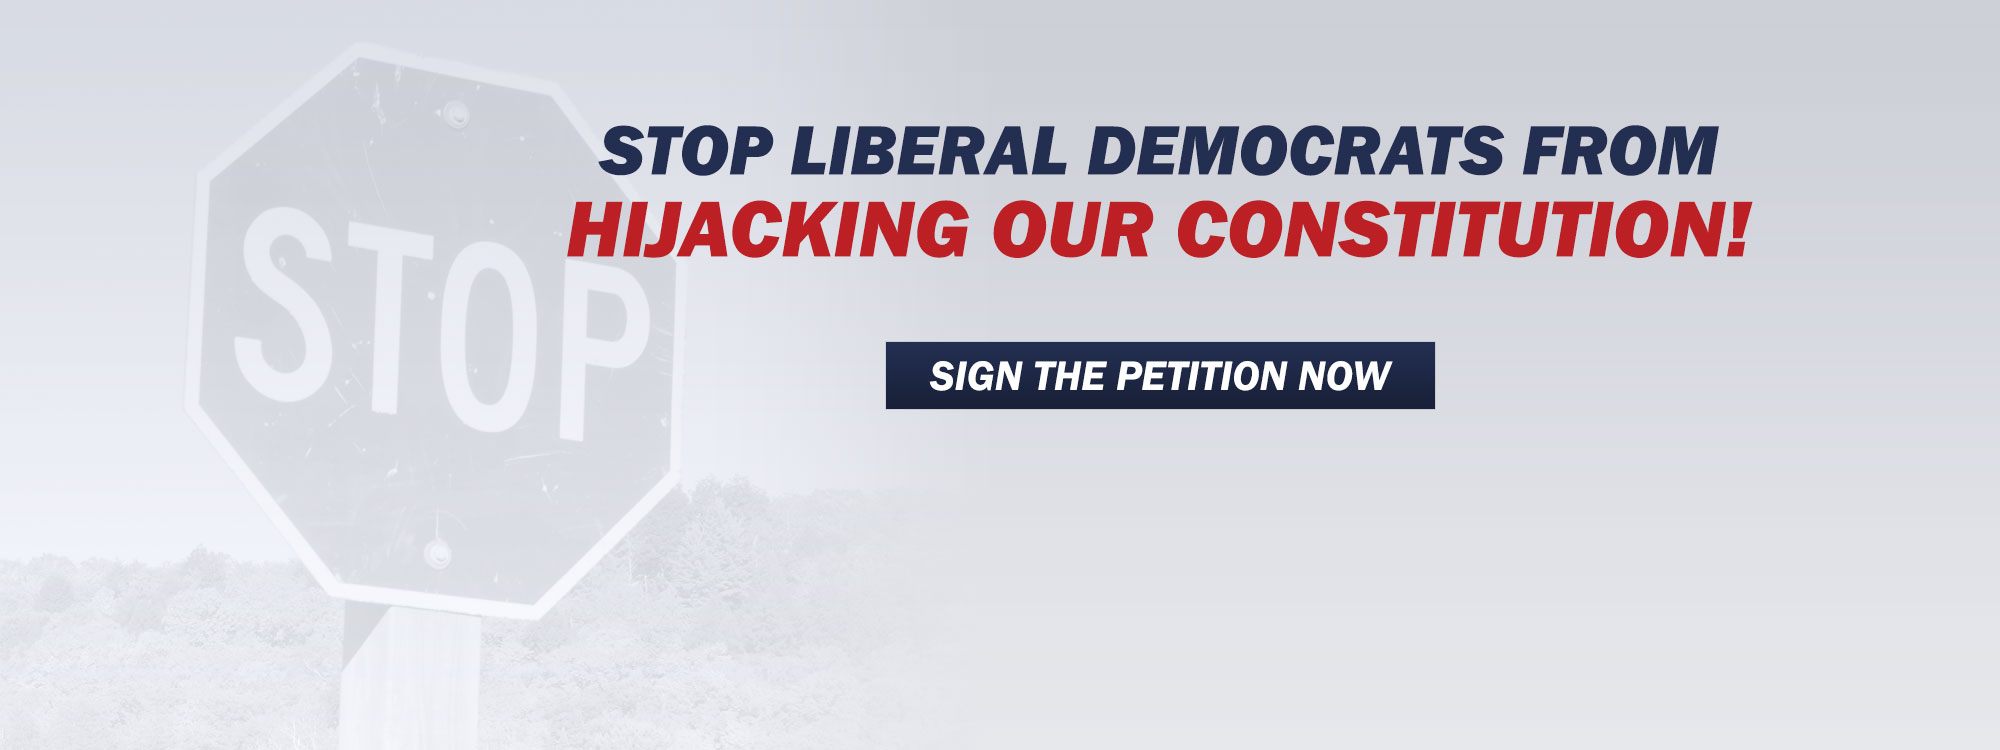 Stop Liberal Democrats from Hijacking Our Constitution!